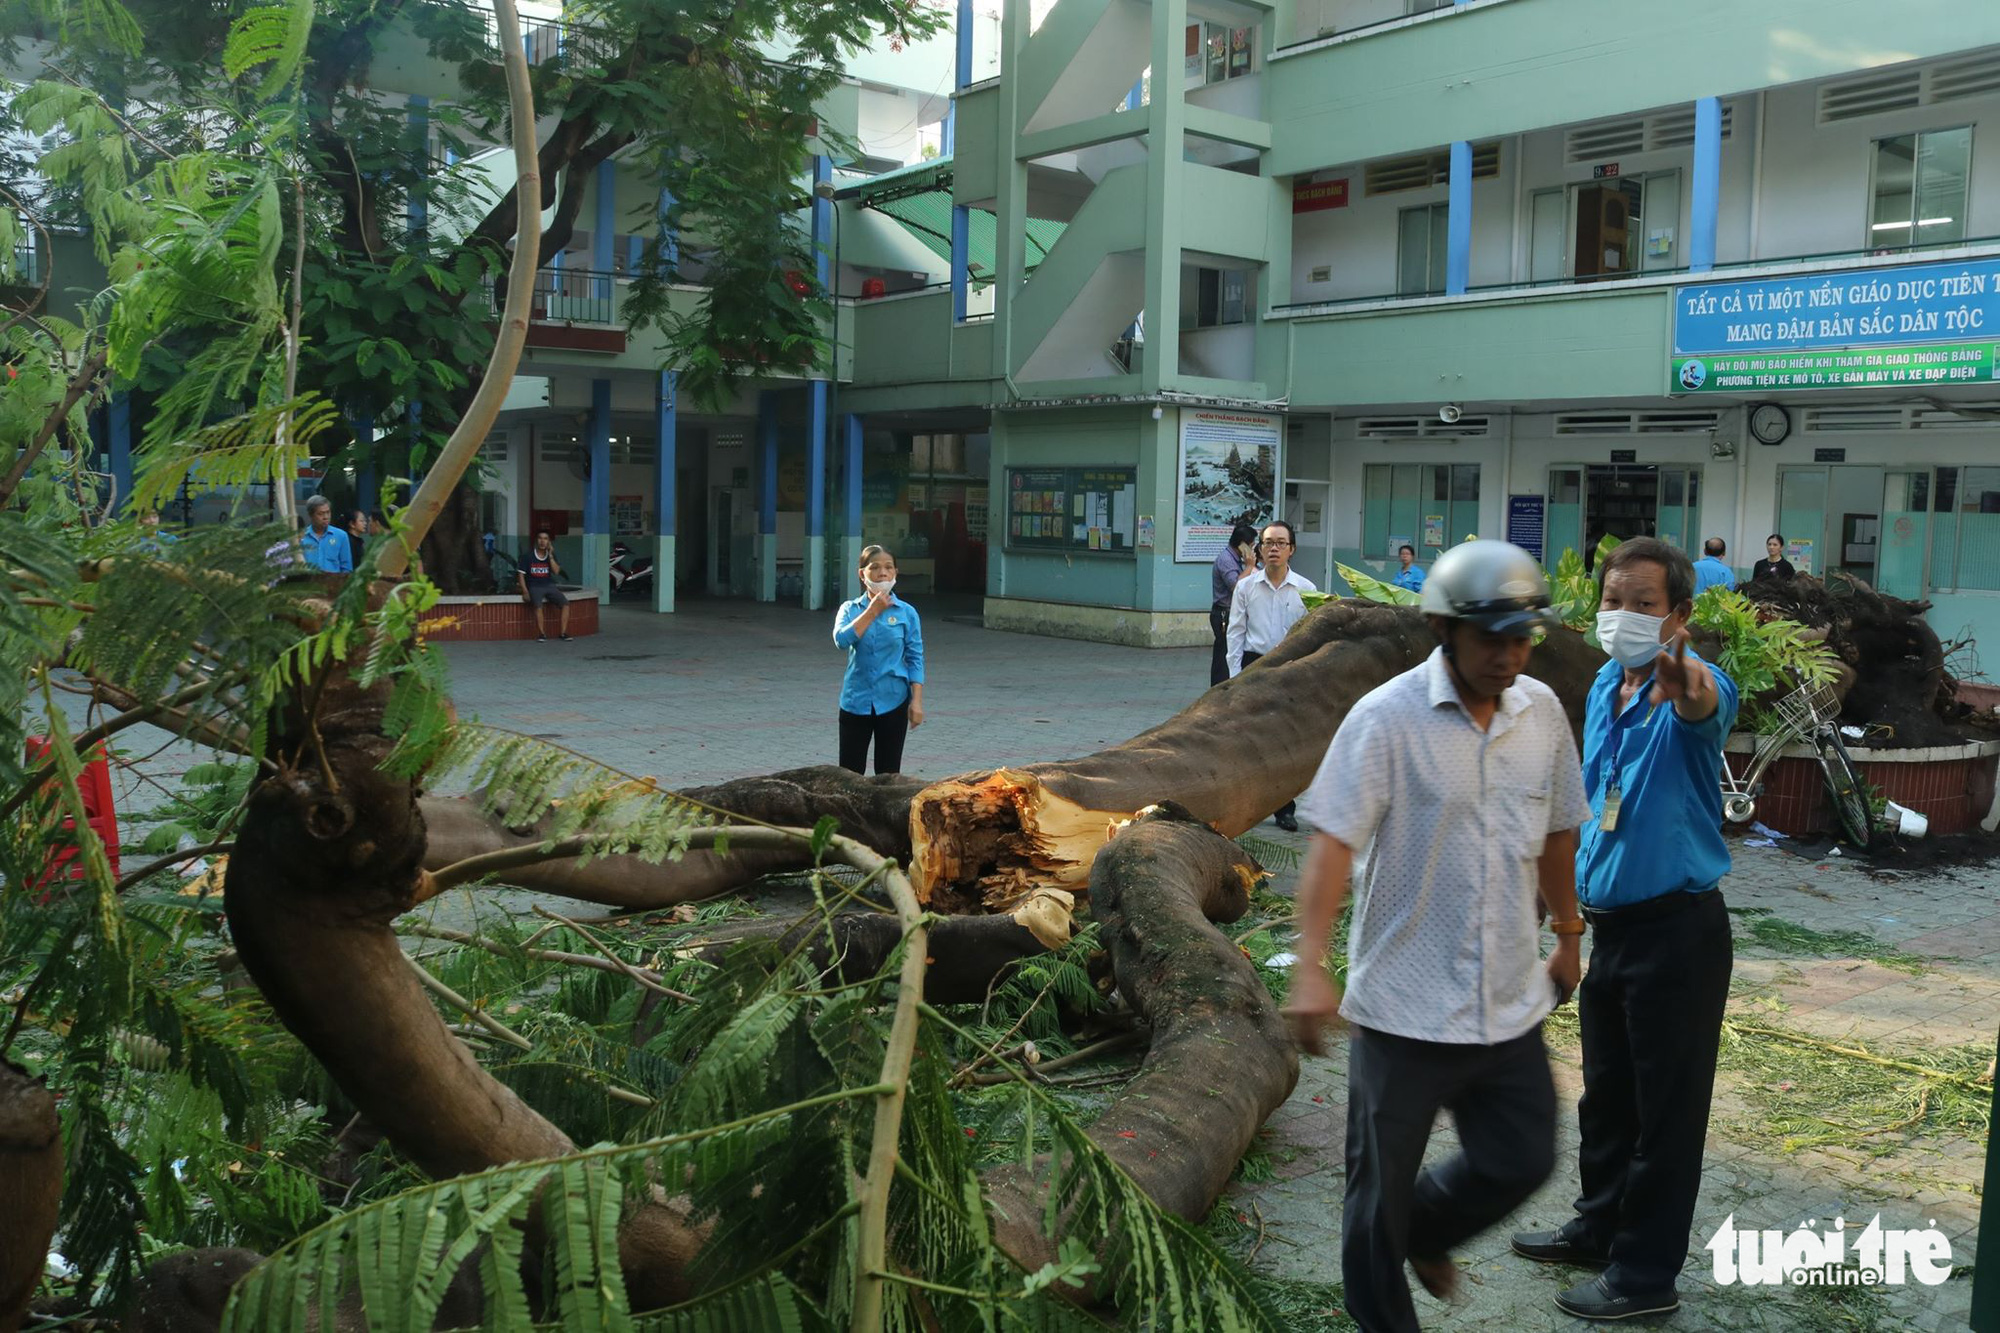 A royal Poinciana tree is uprooted on the premises of Bach Dang Middle School in District 3, Ho Chi Minh City, Vietnam, May 26, 2020. Photo: Trong Nhan / Tuoi Tre